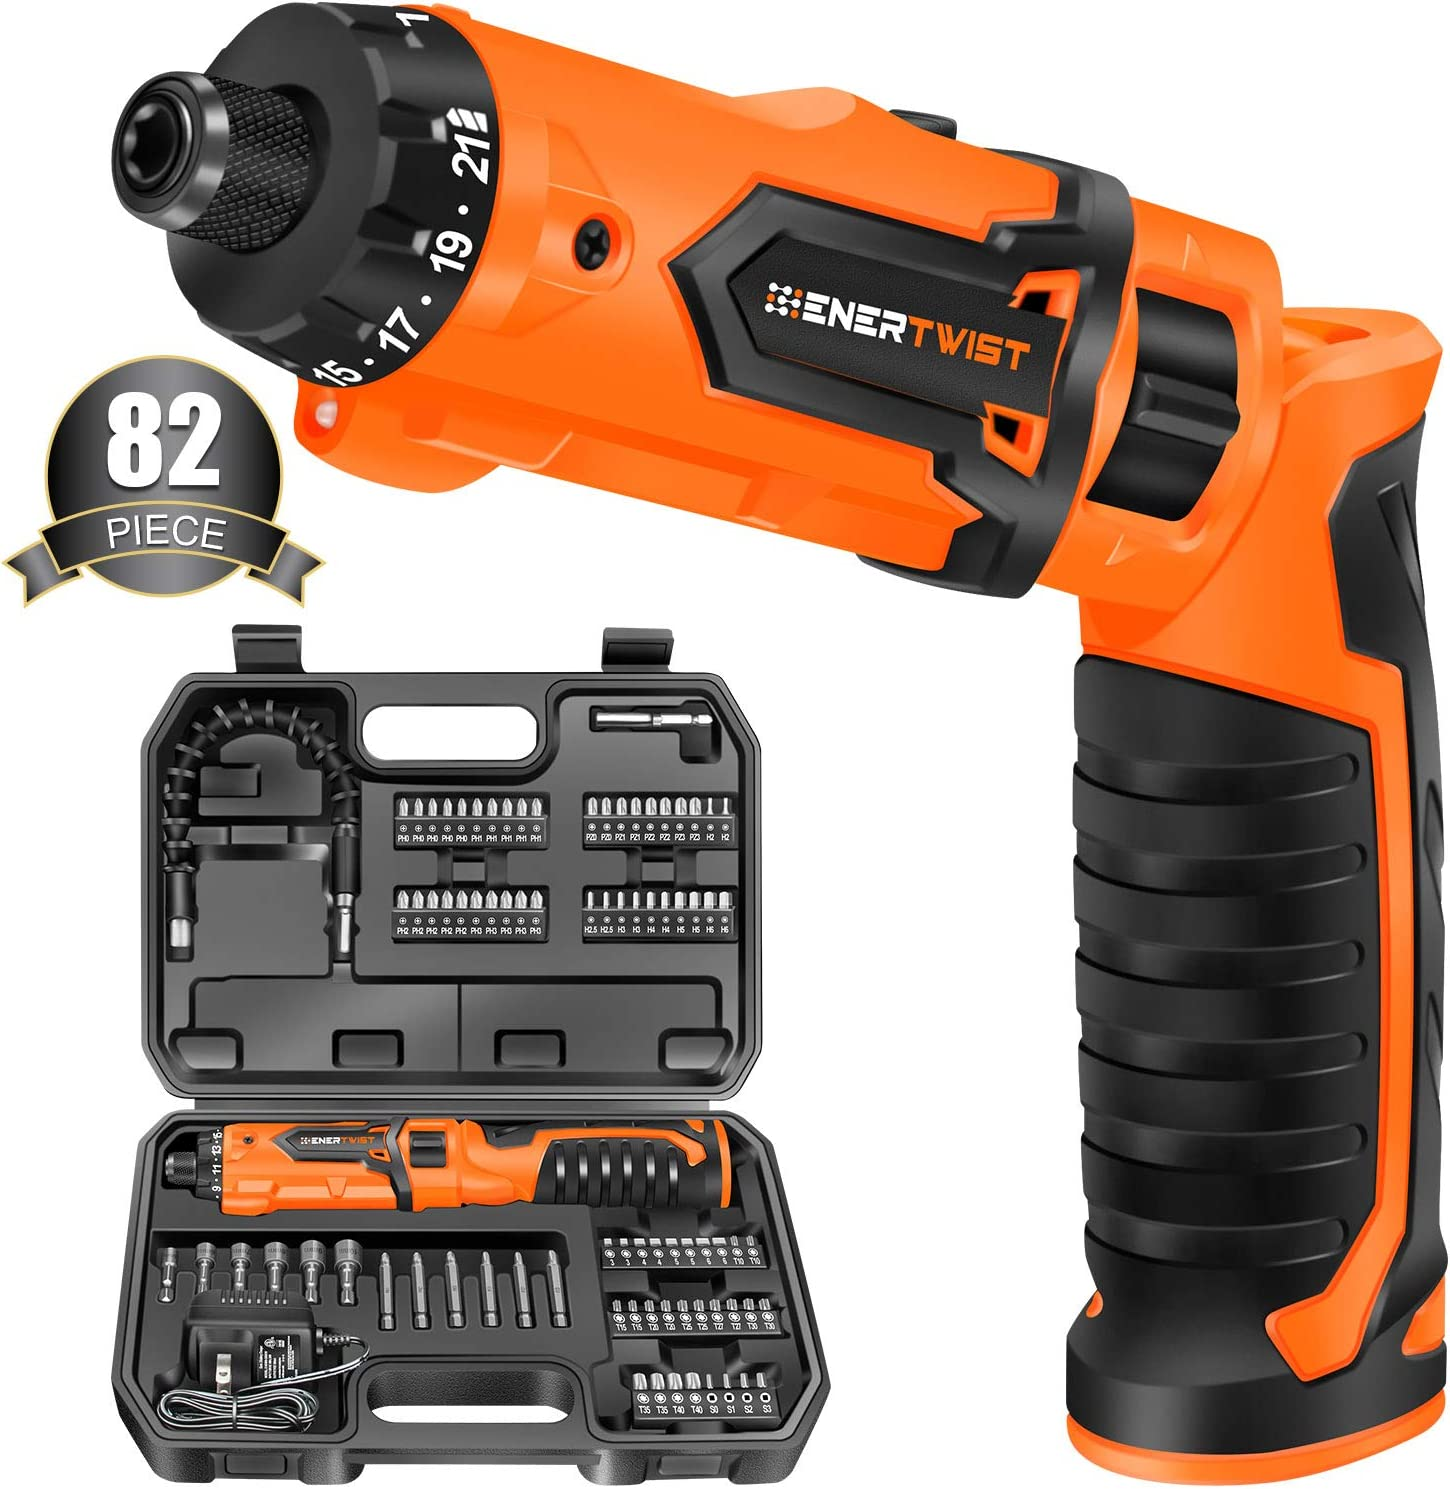 Enertwist Cordless Electric Screwdriver With 82 Accessory Kit